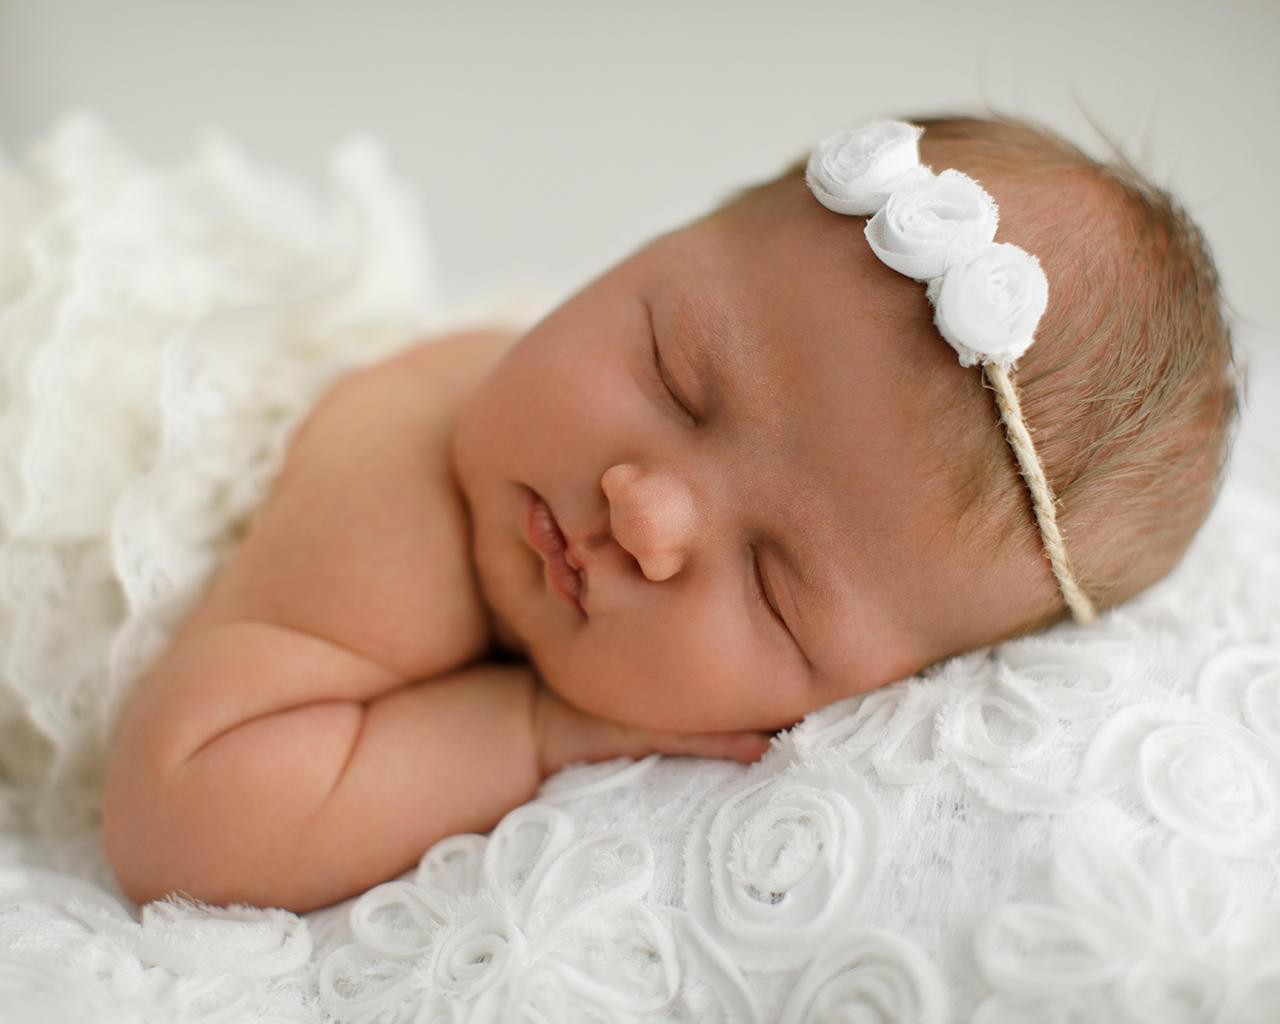 Newborn Photo Editing & Portrait Photography Retouching by Kapacyko - 116025